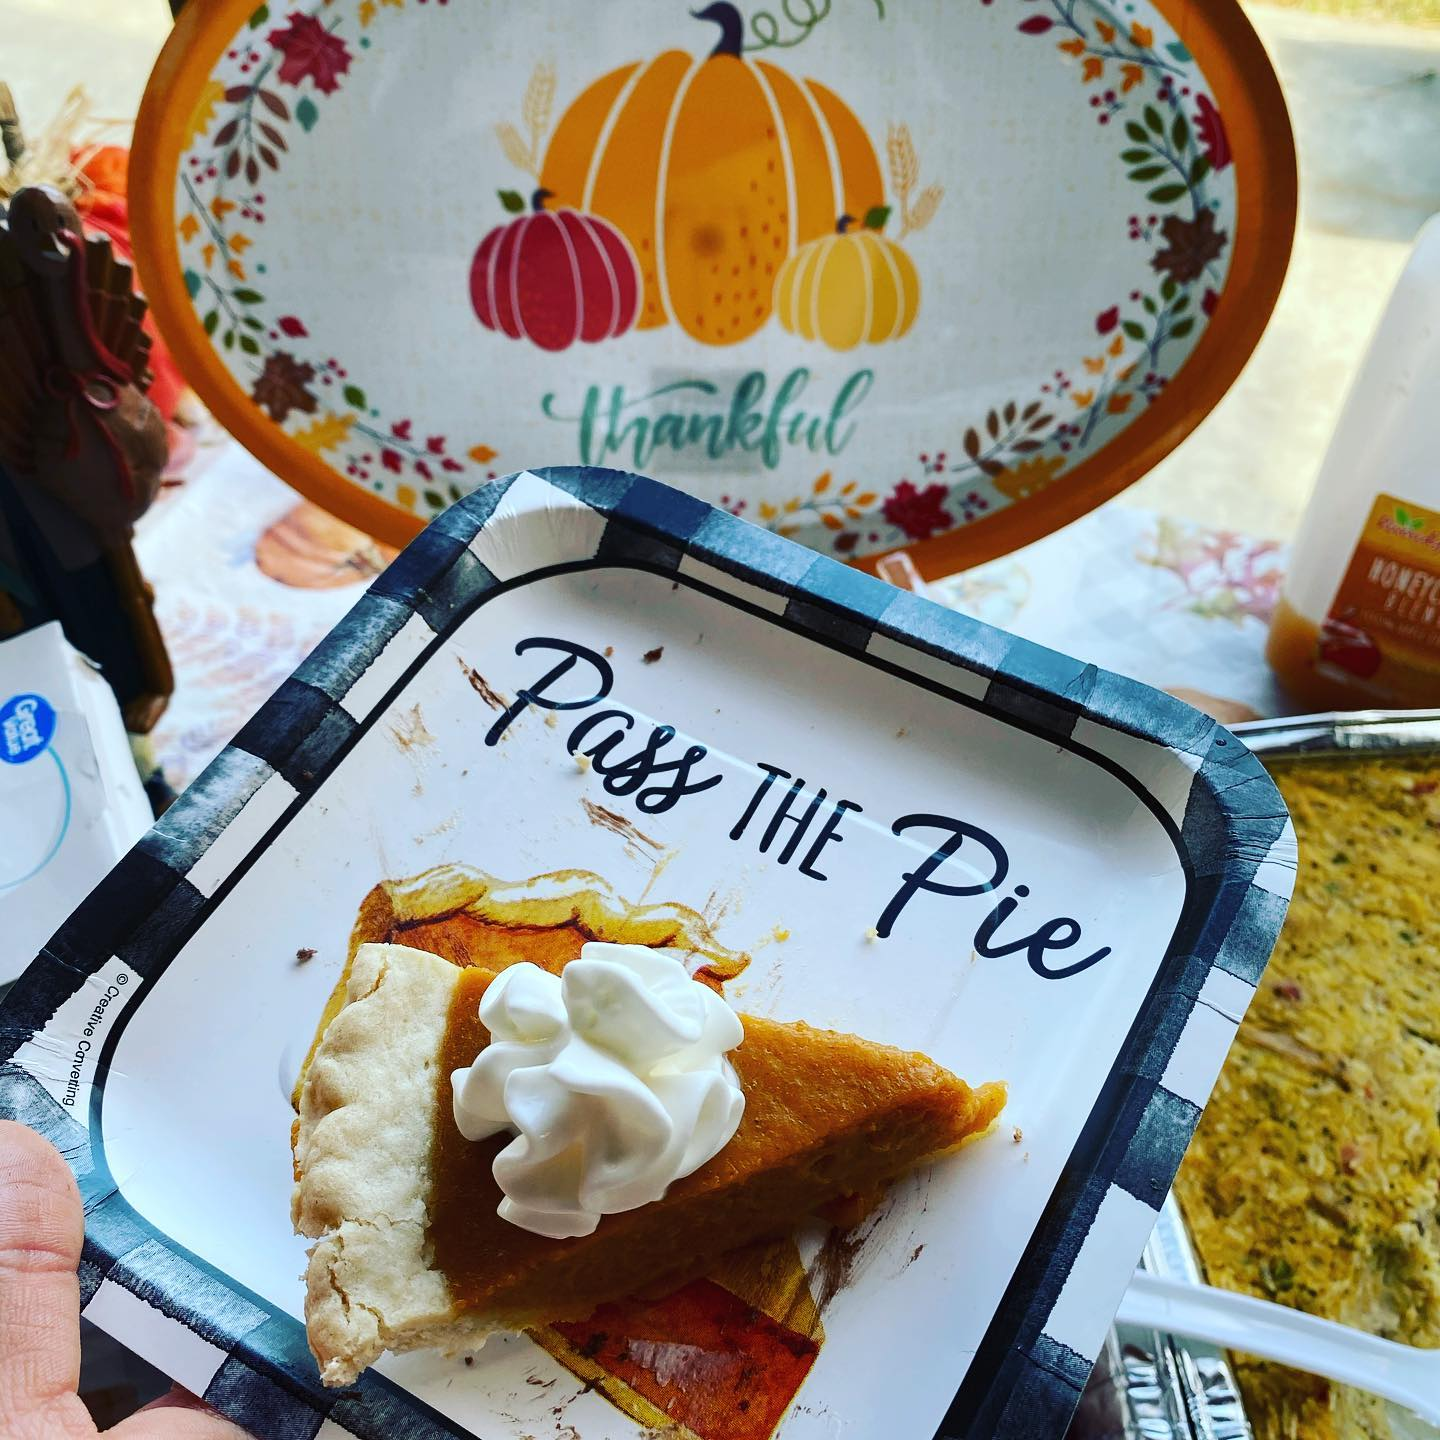 Wishing many blessing to all - continue to spread the smiles and pies to all around you!! Good times with family is a true blessing- enjoy every moment! #blessings #familytime